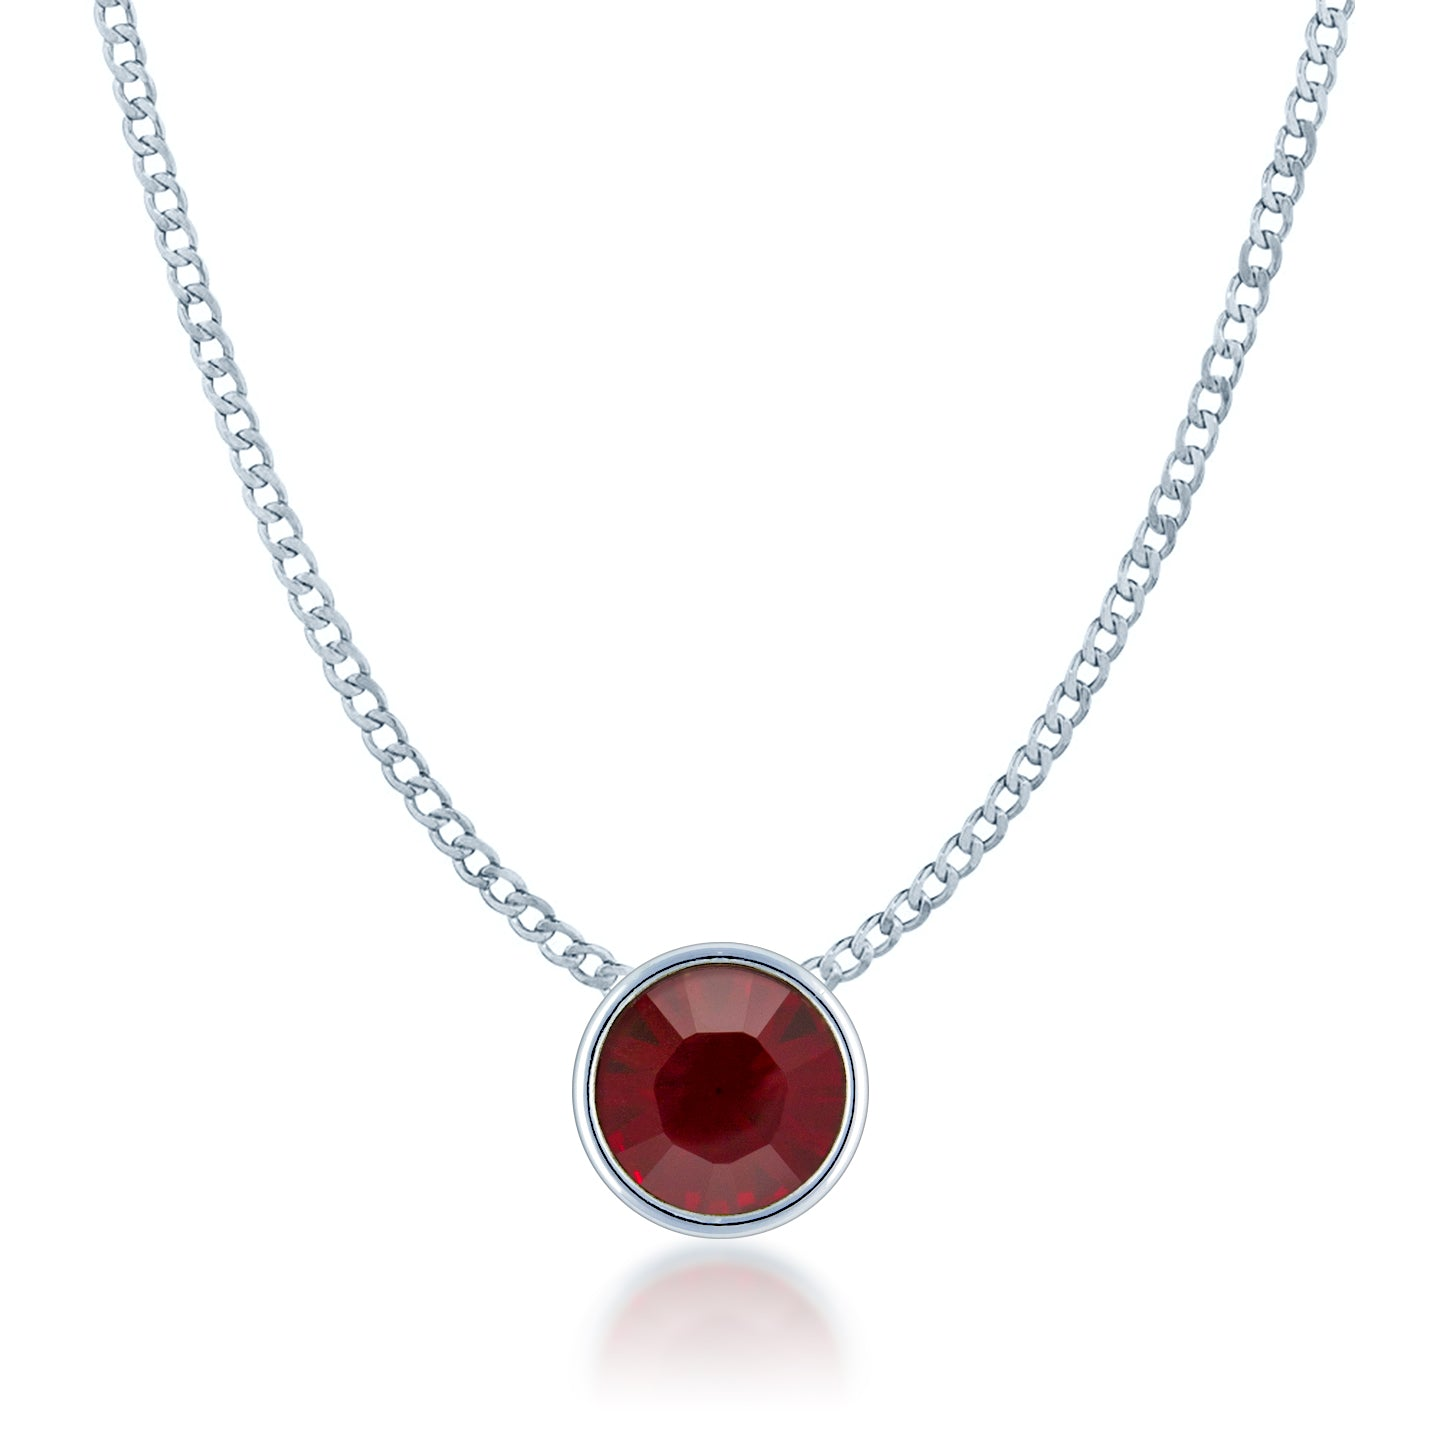 d6cd905efc8a Harley Small Pendant Necklace with Red Siam Round Crystals from Swarovski  Silver Toned Rhodium Plated -